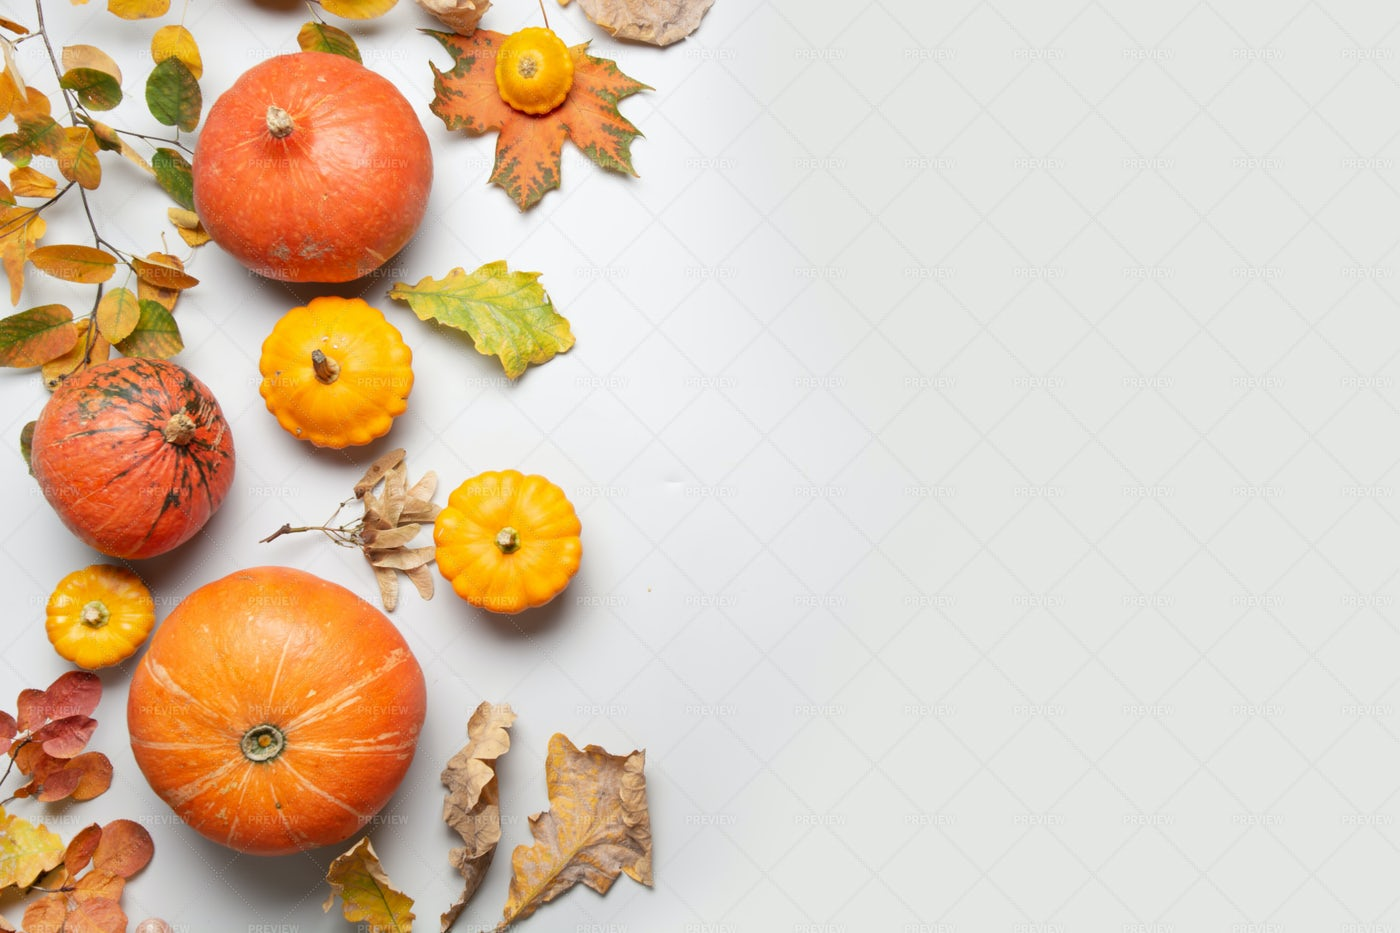 Pumpkin And Maple Leaves: Stock Photos